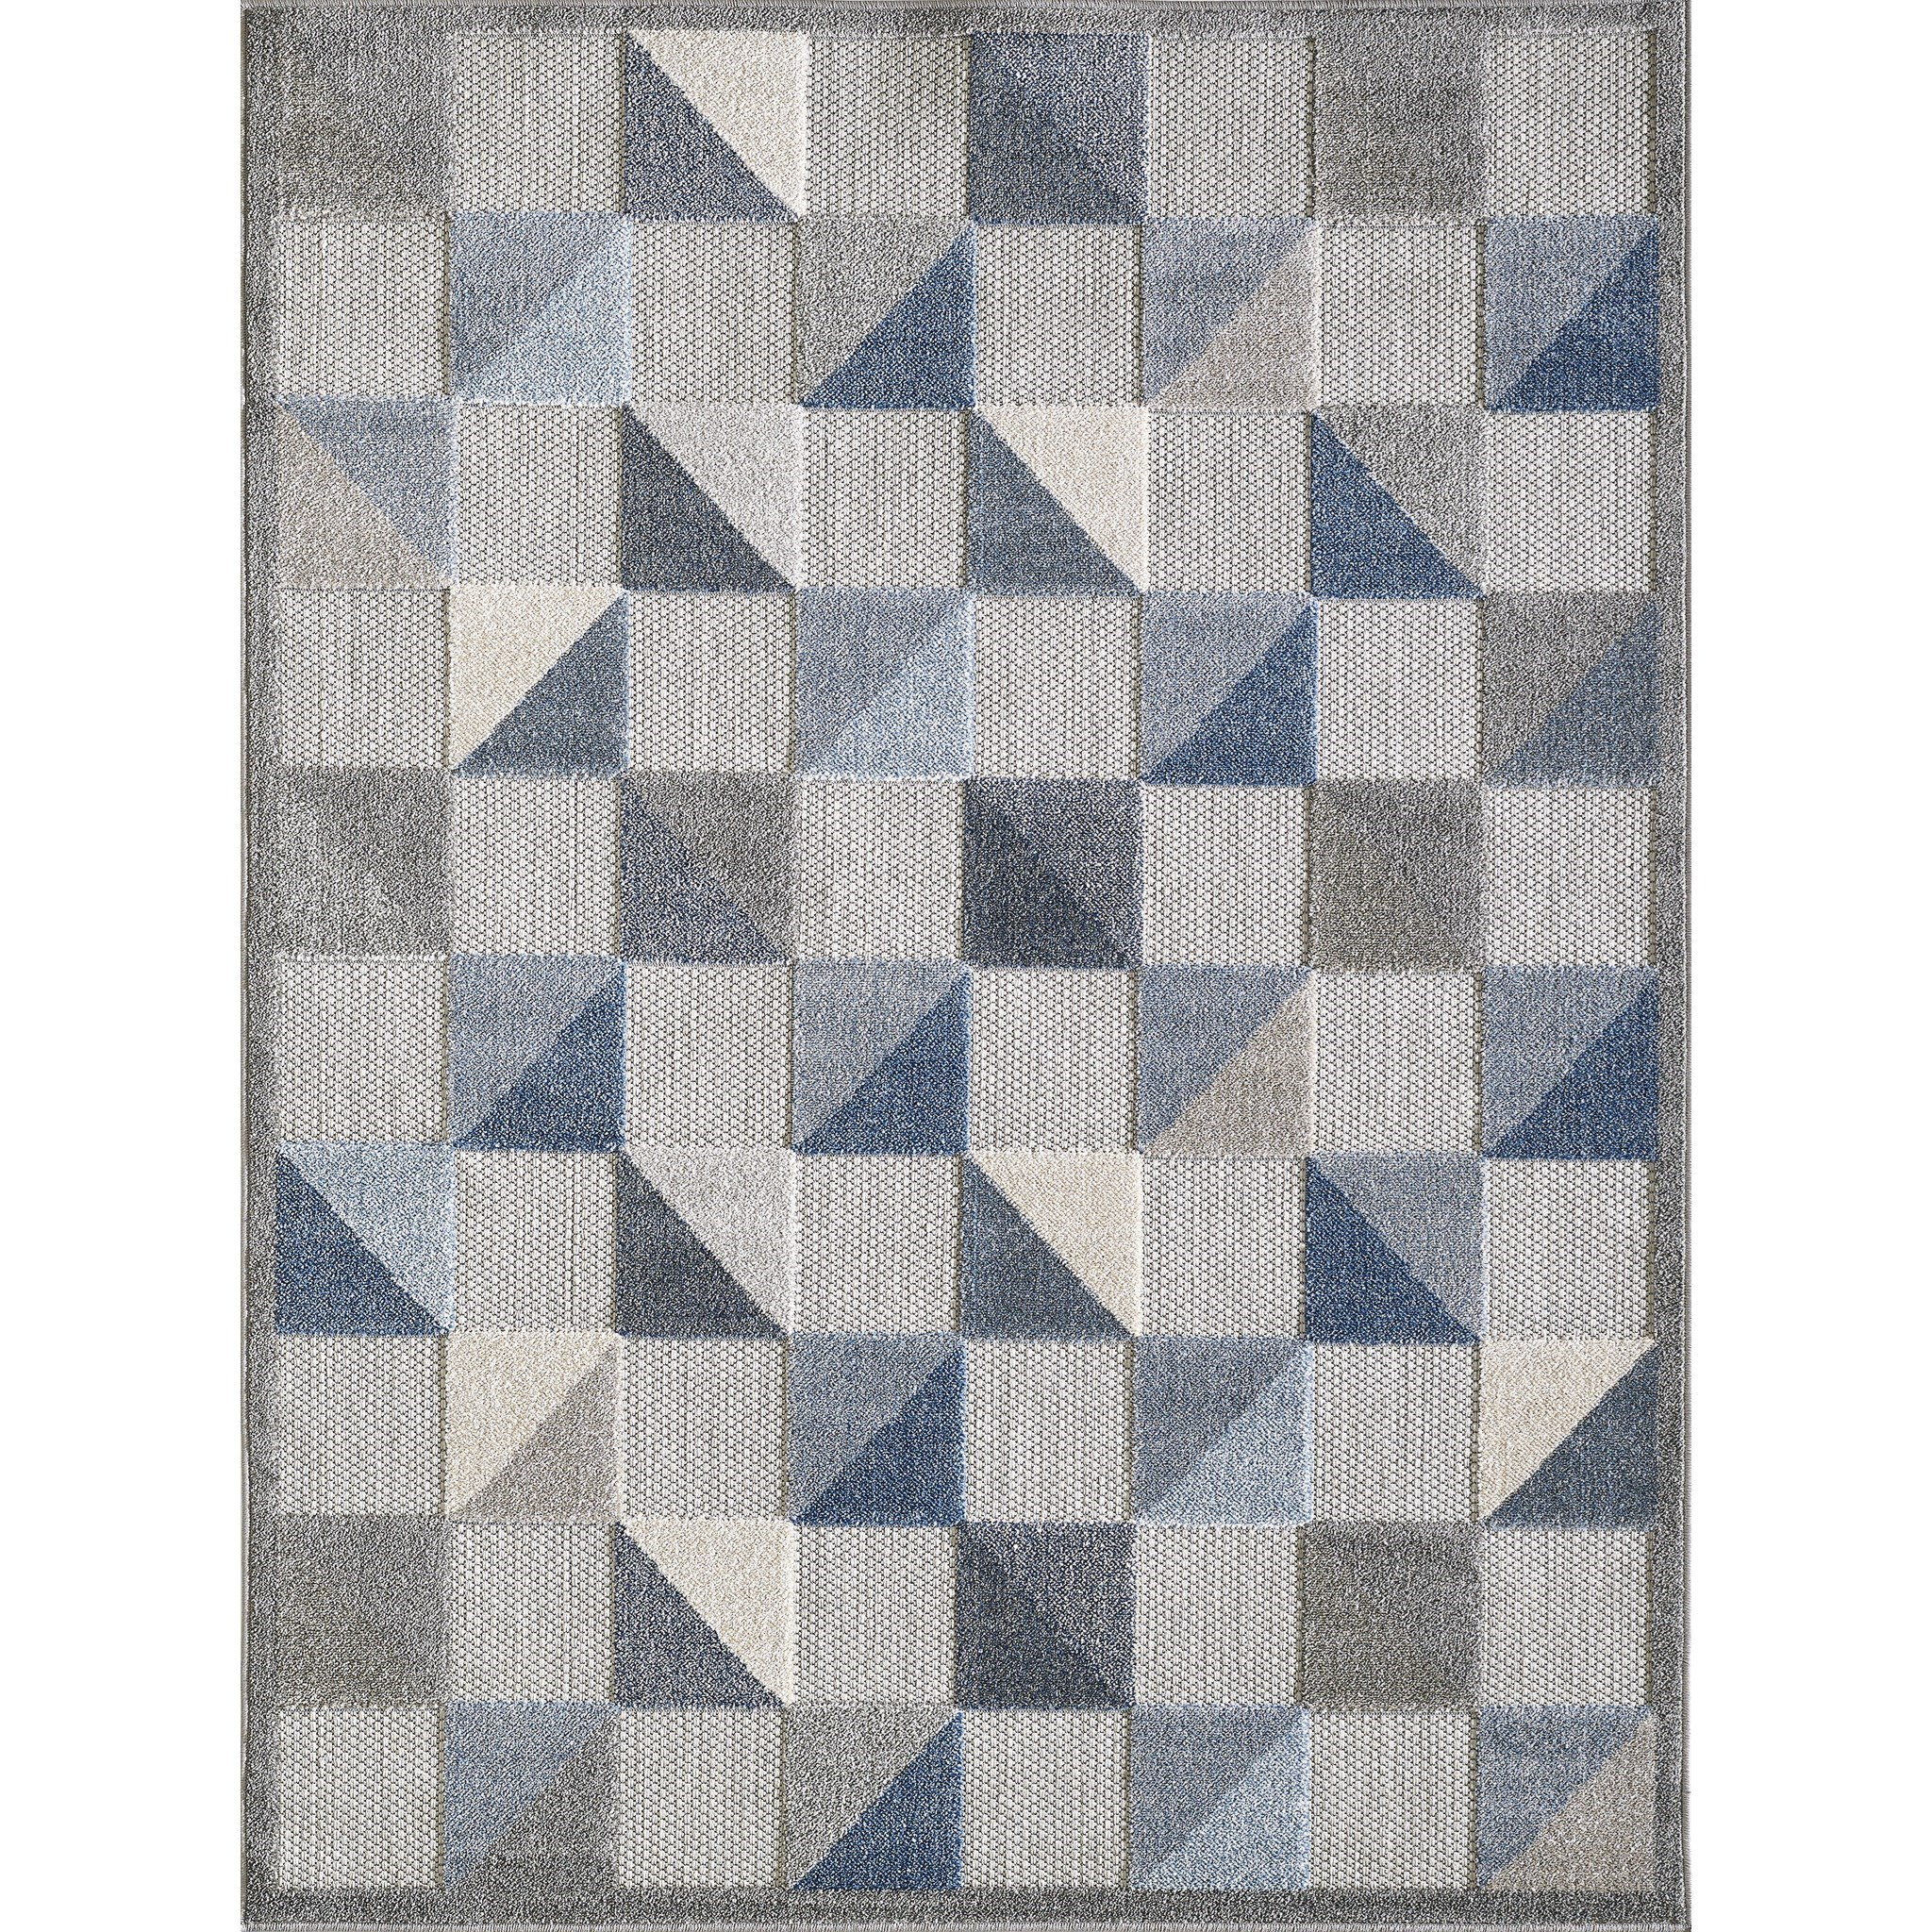 """Calla Scope 5' 3"""" x 7' Rug by Kas at Zak's Home"""